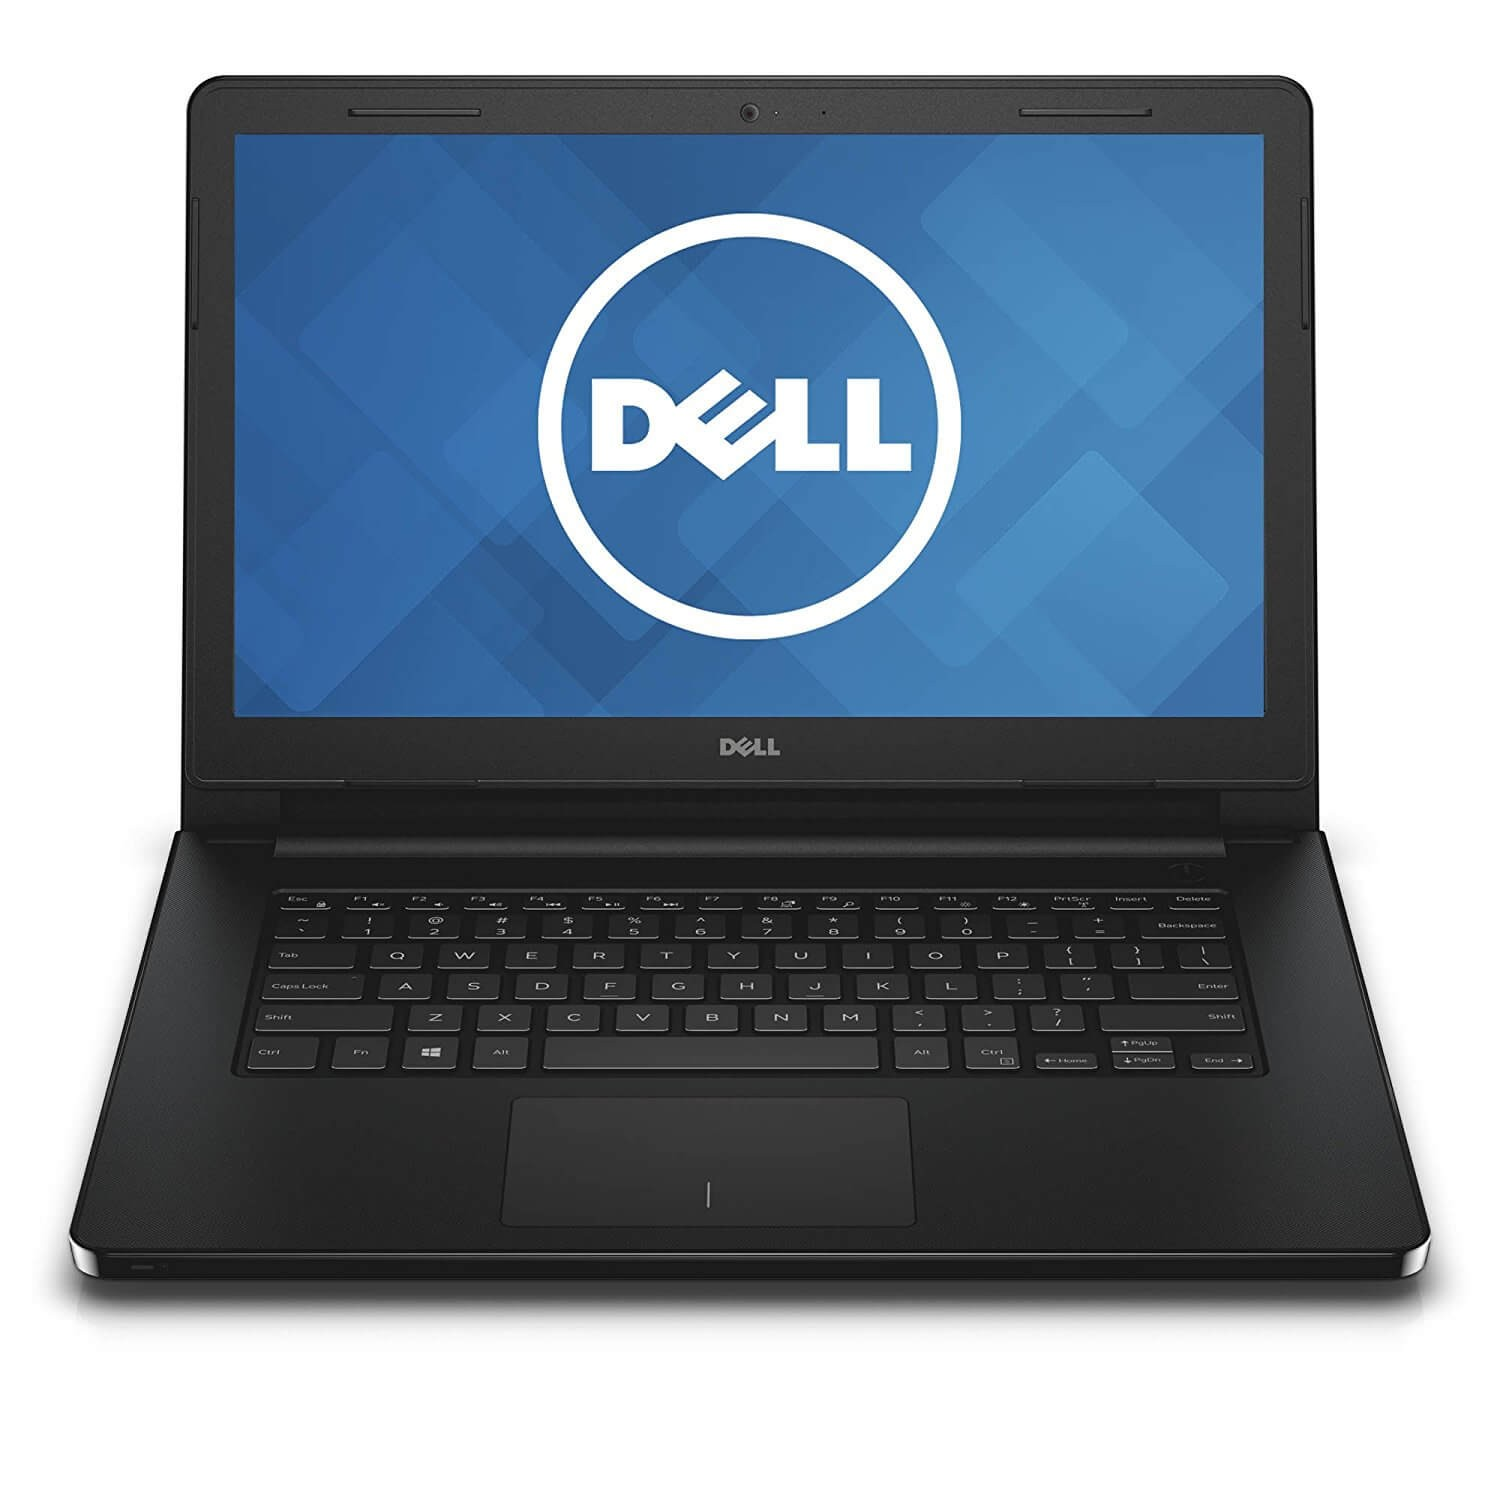 Dell Inspiron 3467 14-inch Intel Core i3-6006U - Black 1